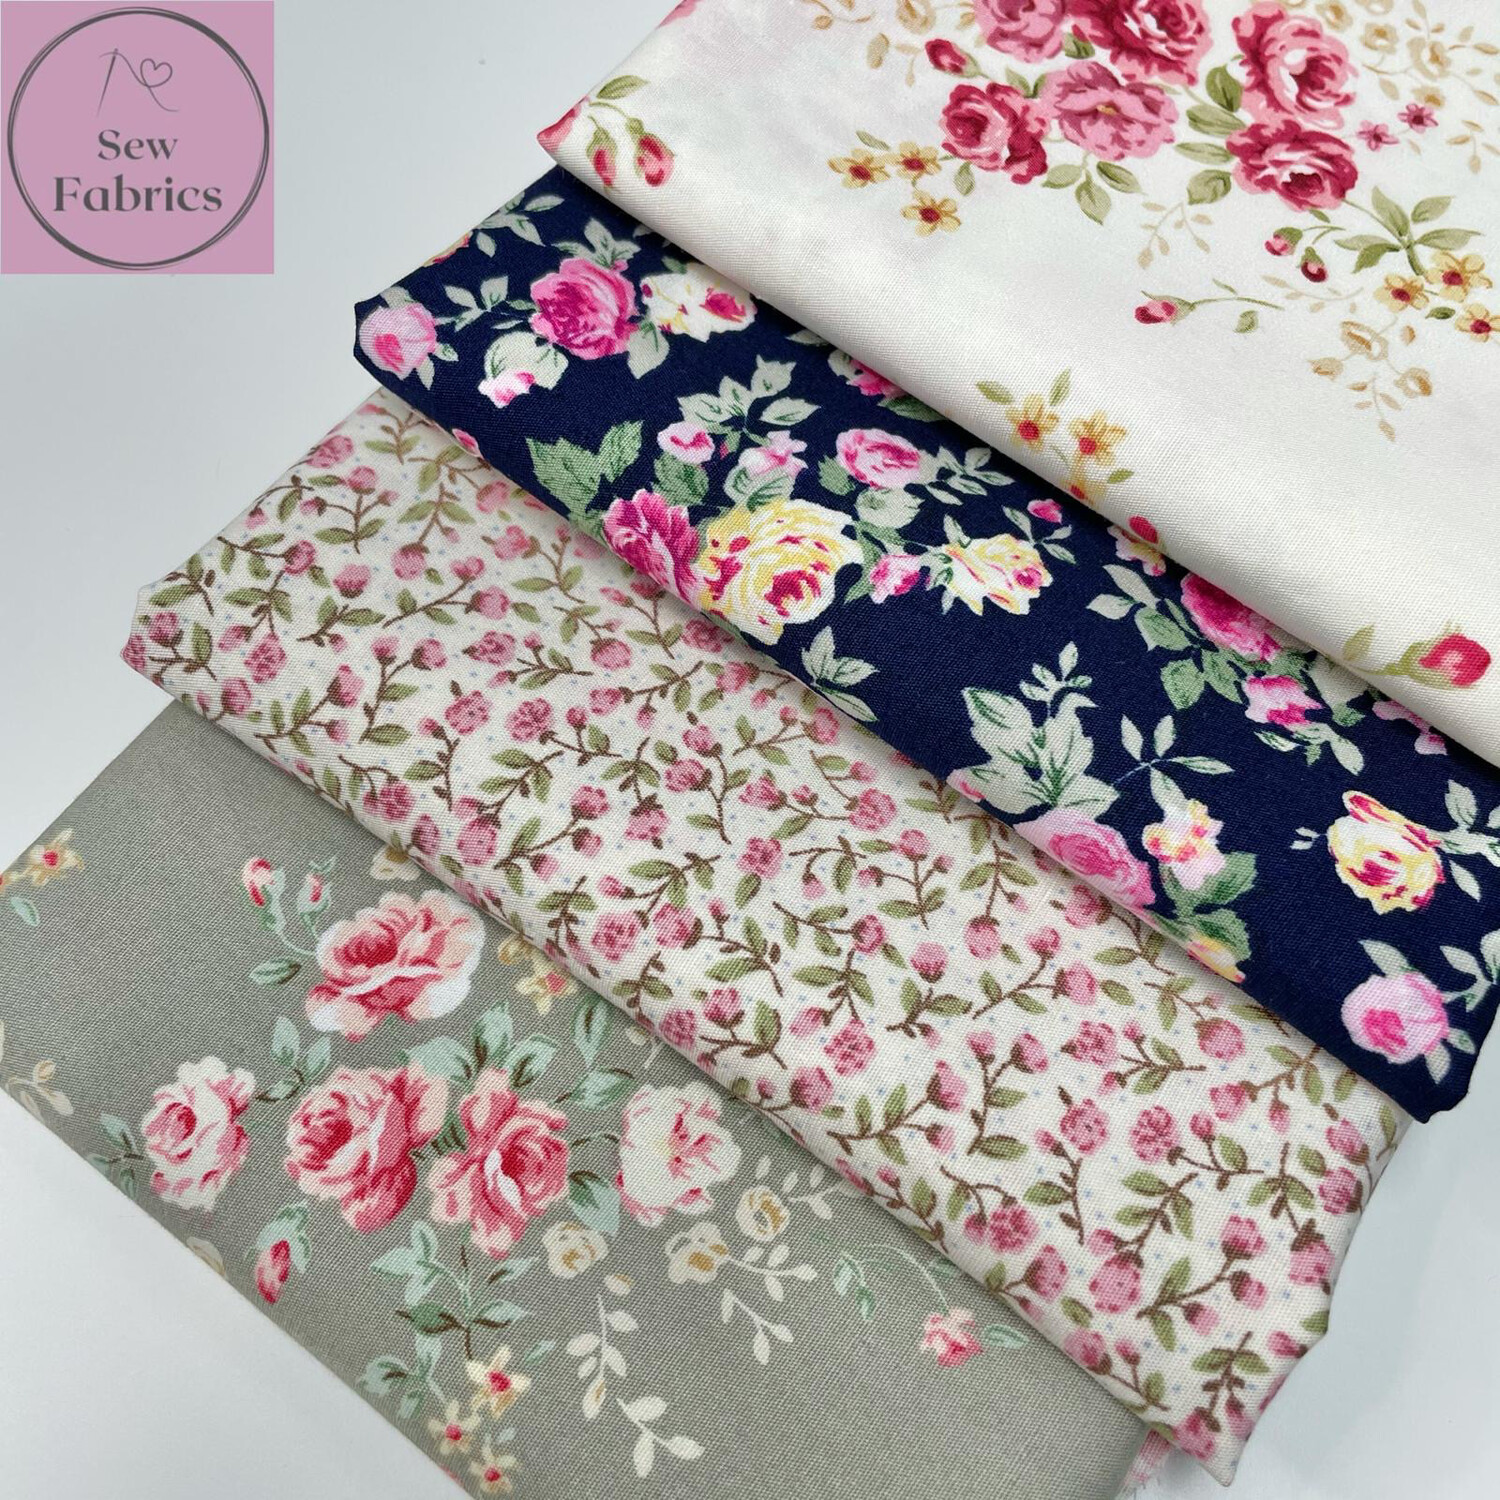 100% Cotton Poplin Rose and Hubble Floral 4 x Fat Quarter Bundle, Spring Summer Quilting, Crafting